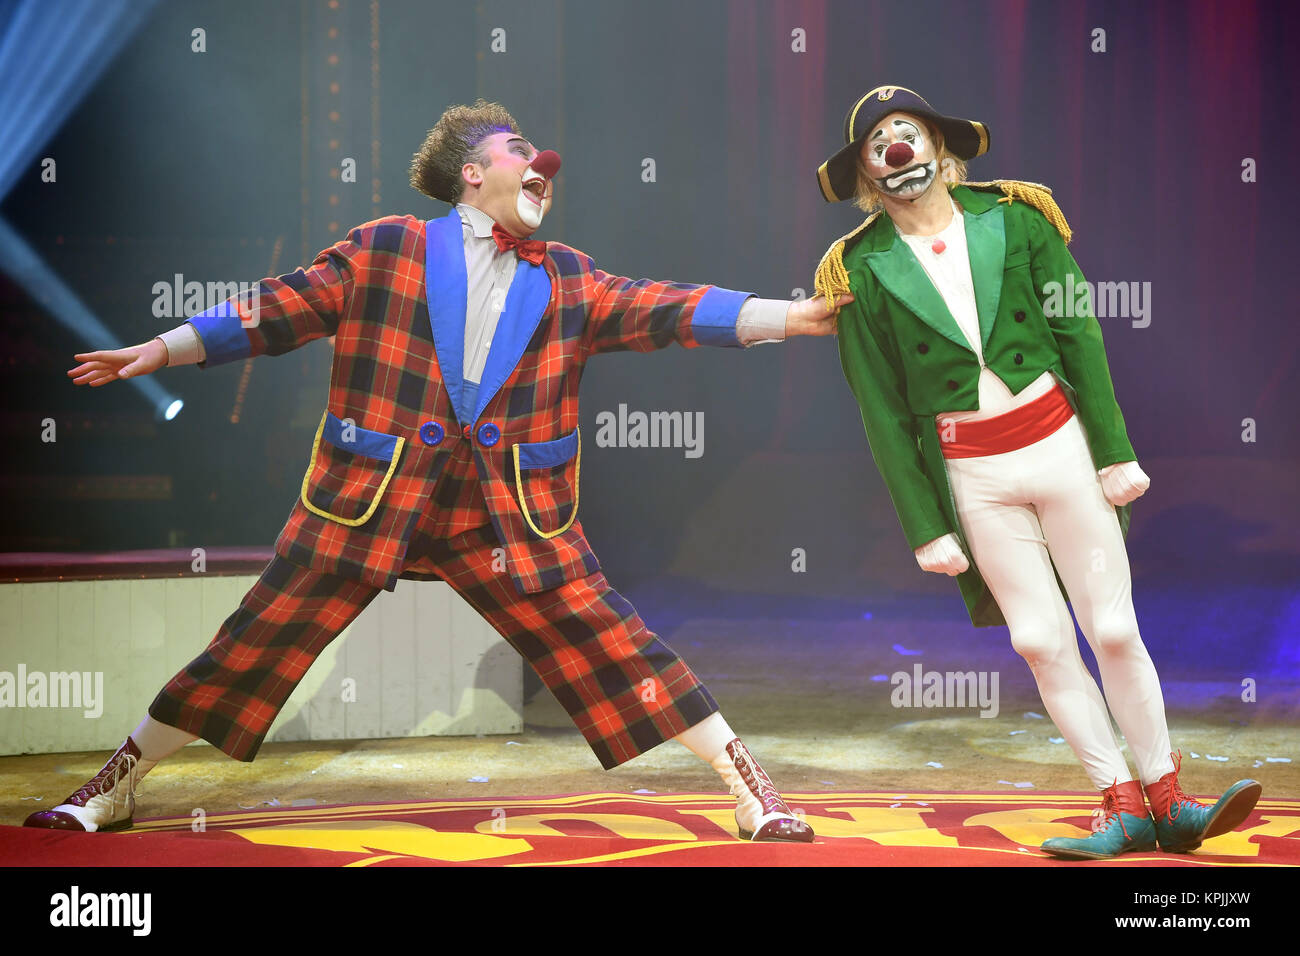 Berlin, Germany. 16th Dec, 2017. The KGB clowns perform at the Tempodrom during the 14th Roncalli Christmas Circus - Stock Image